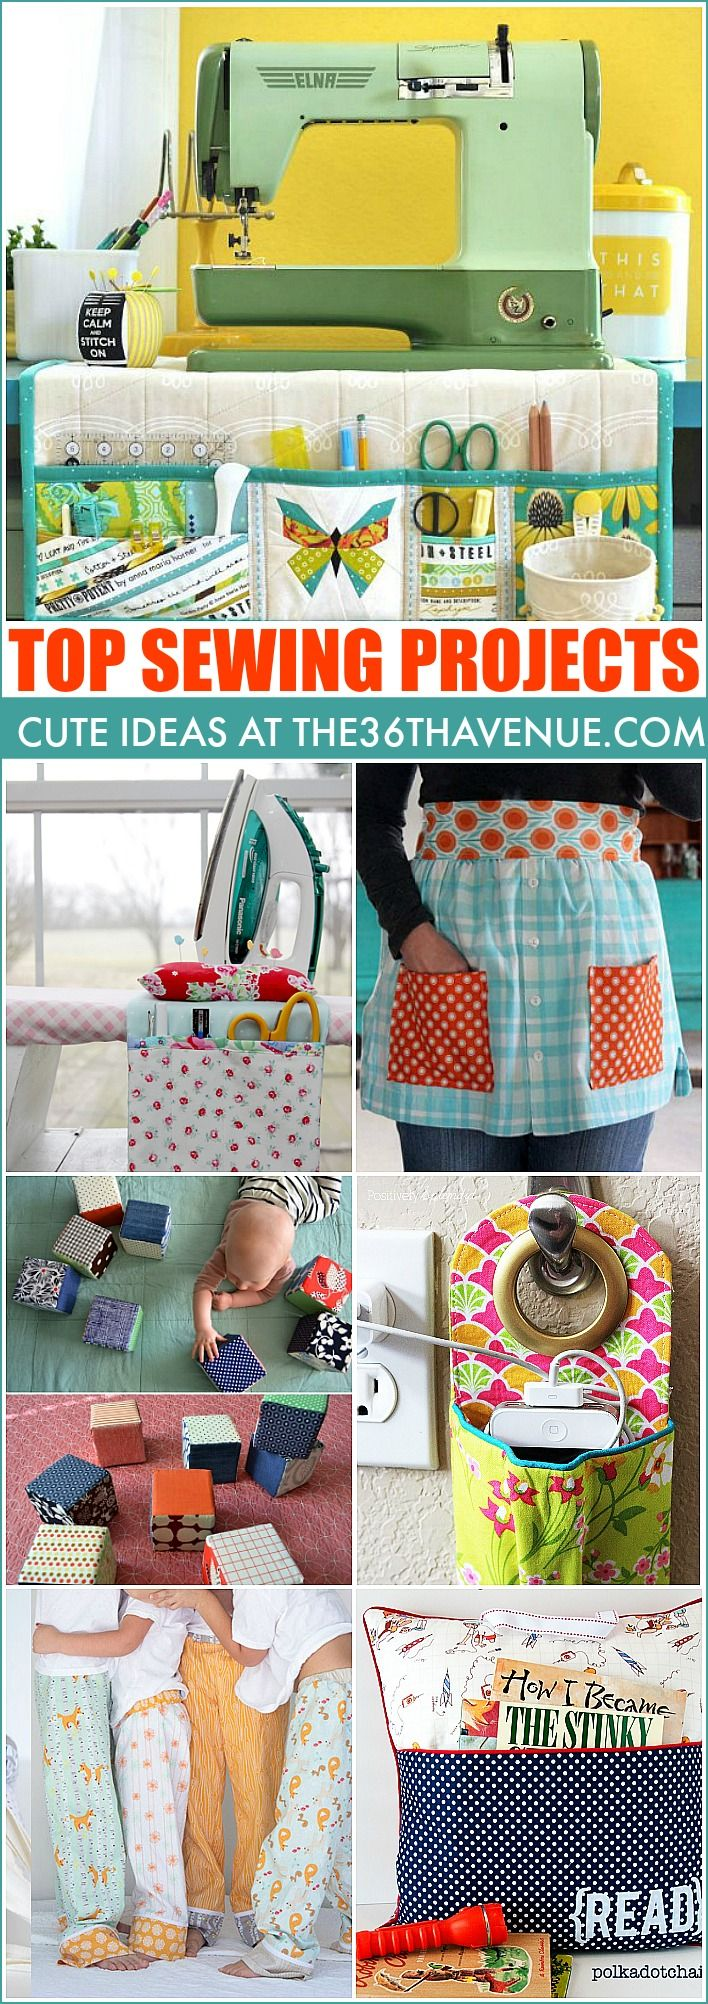 All of these sewing projects are so cute! I don't know which one I want to tackle first!